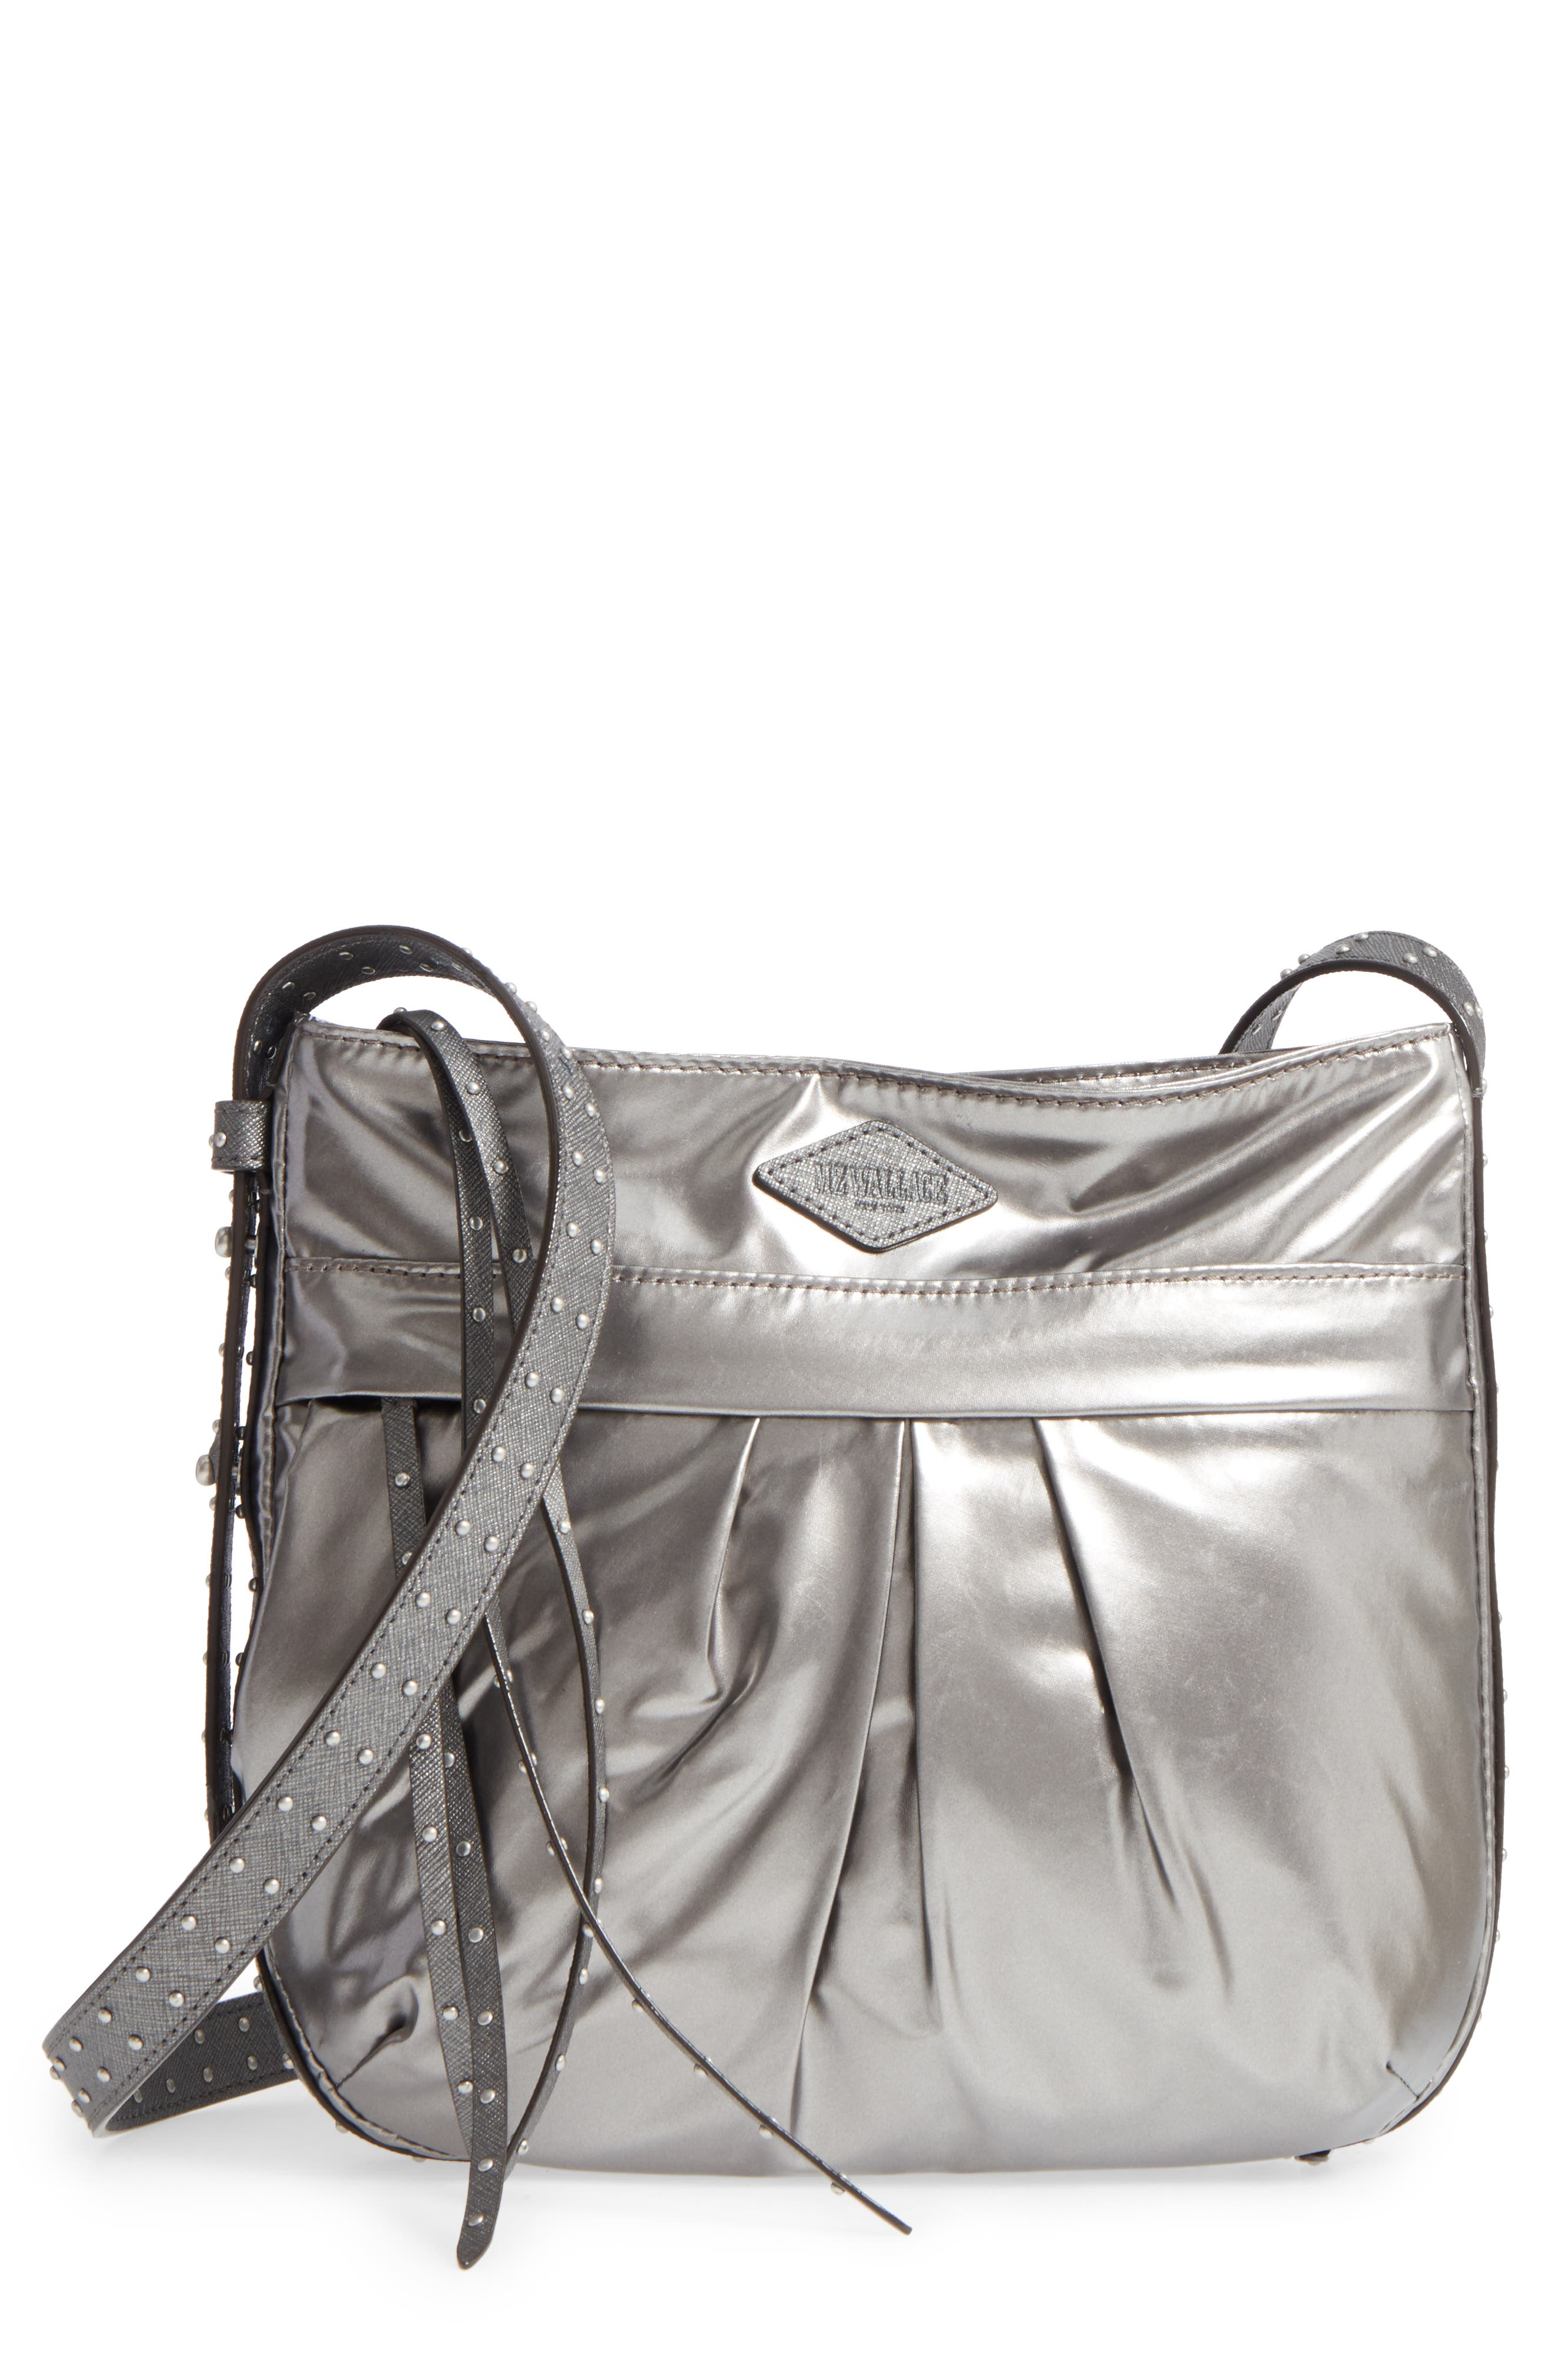 Alternate Image 1 Selected - MZ Wallace Harlow Bedford Nylon Crossbody Bag